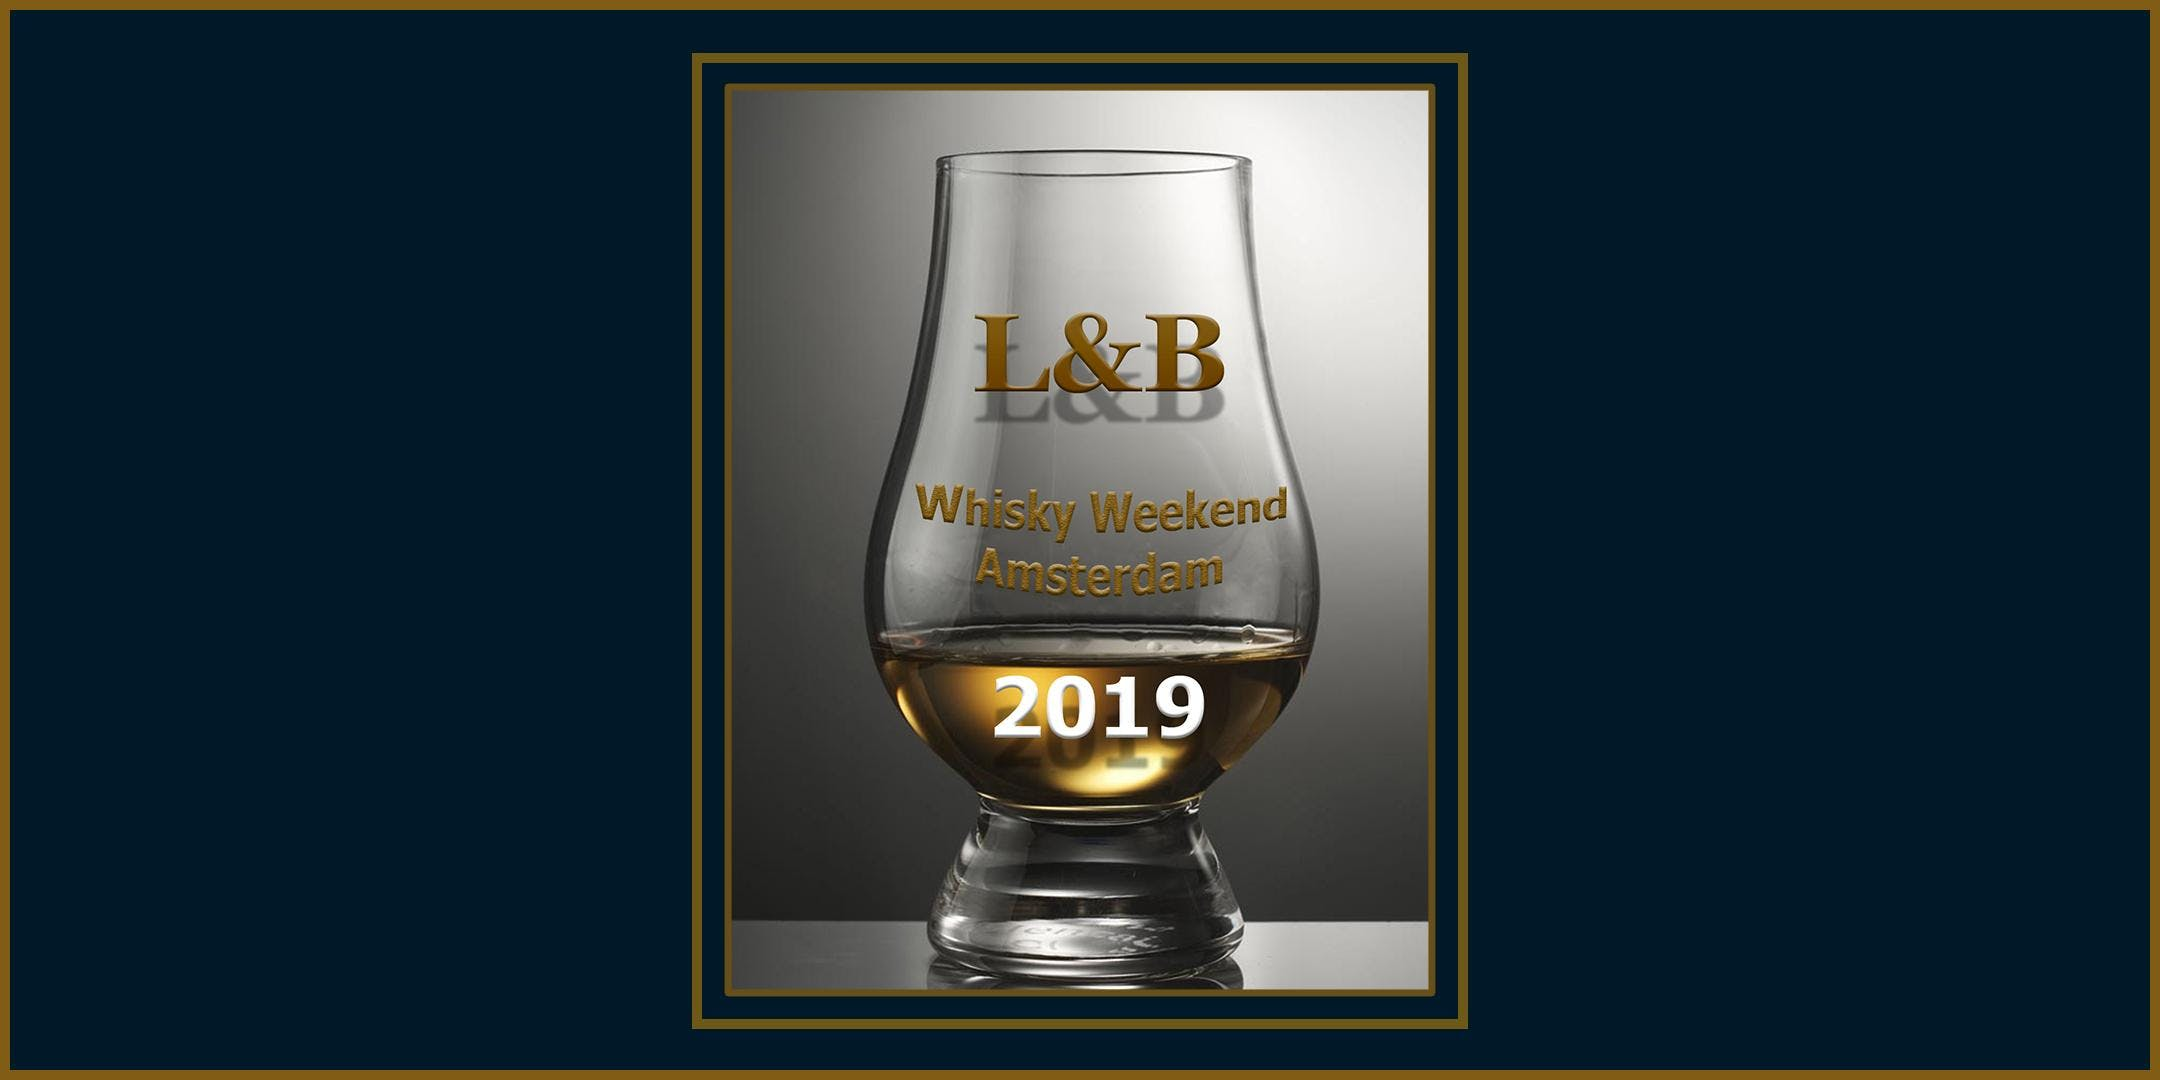 L&B Whisky Weekend Amsterdam